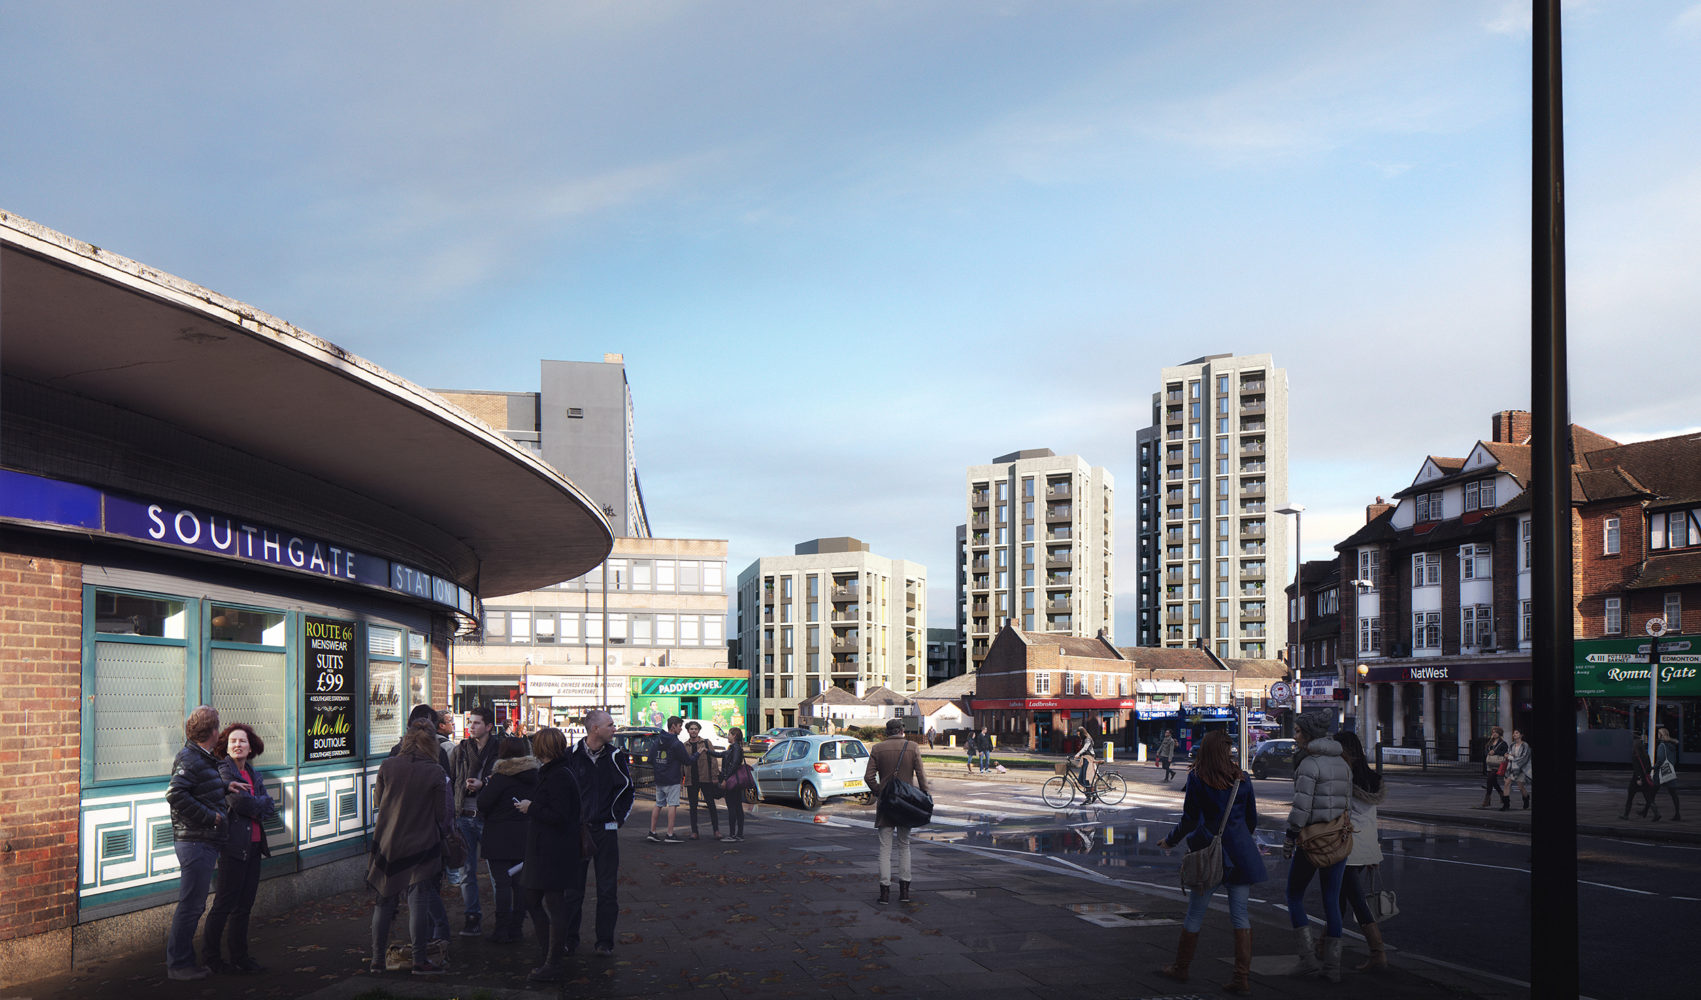 New tower blocks planned in Southgate (credit Viewpoint Estates)